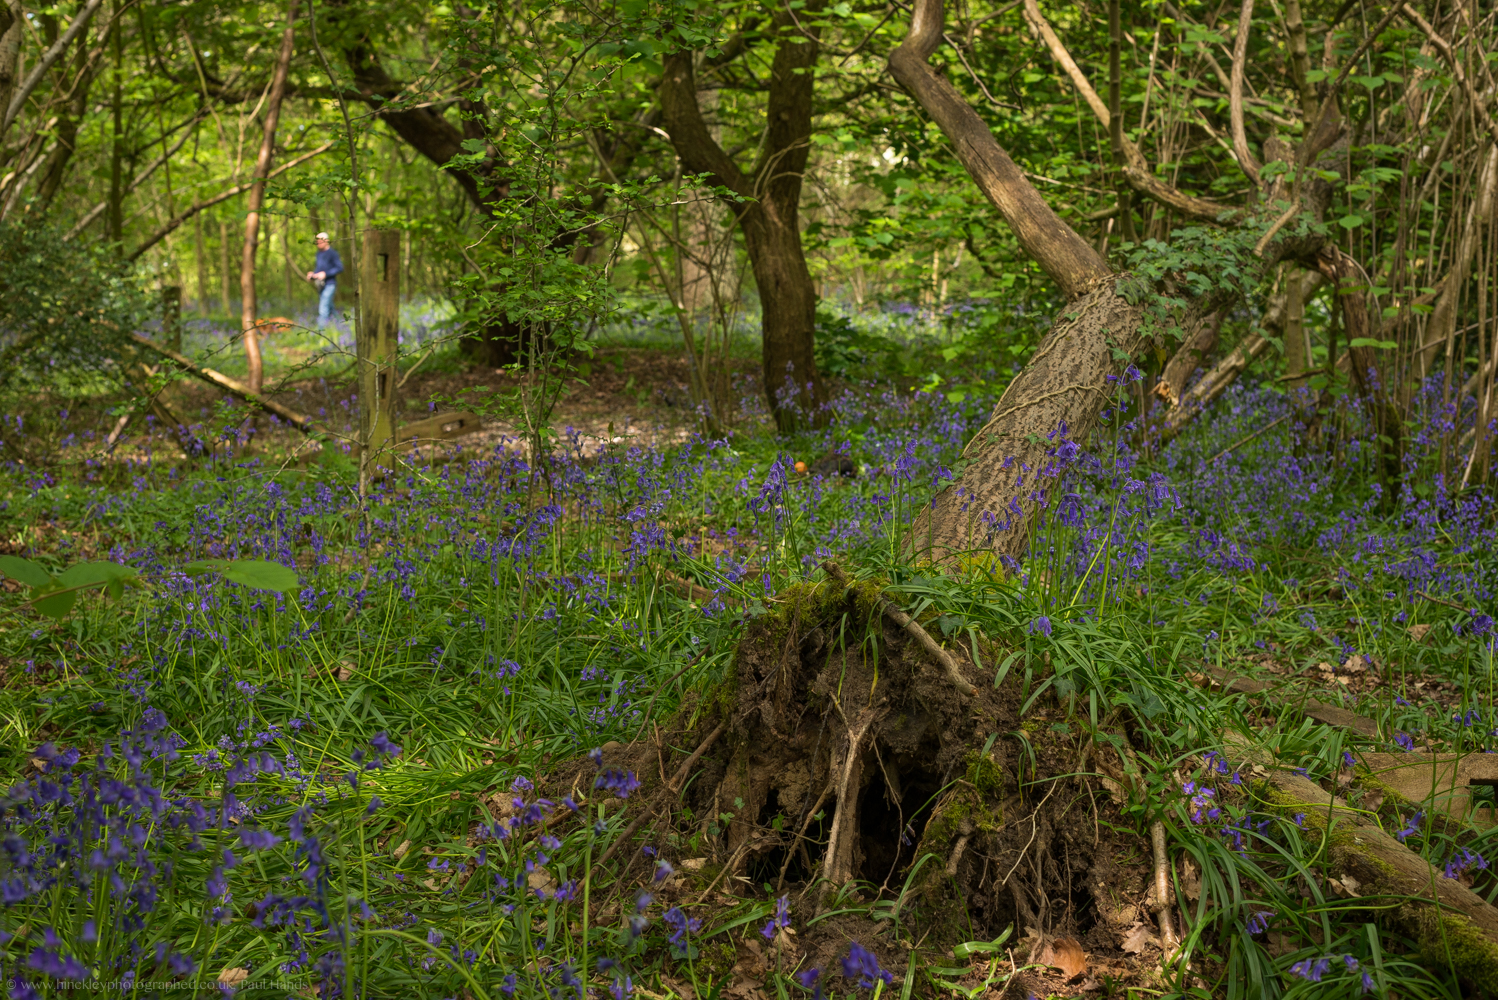 Burbage Common, Bluebell Woods, Hinckley, Paul Hands, Hinckley & Bosworth Photographed